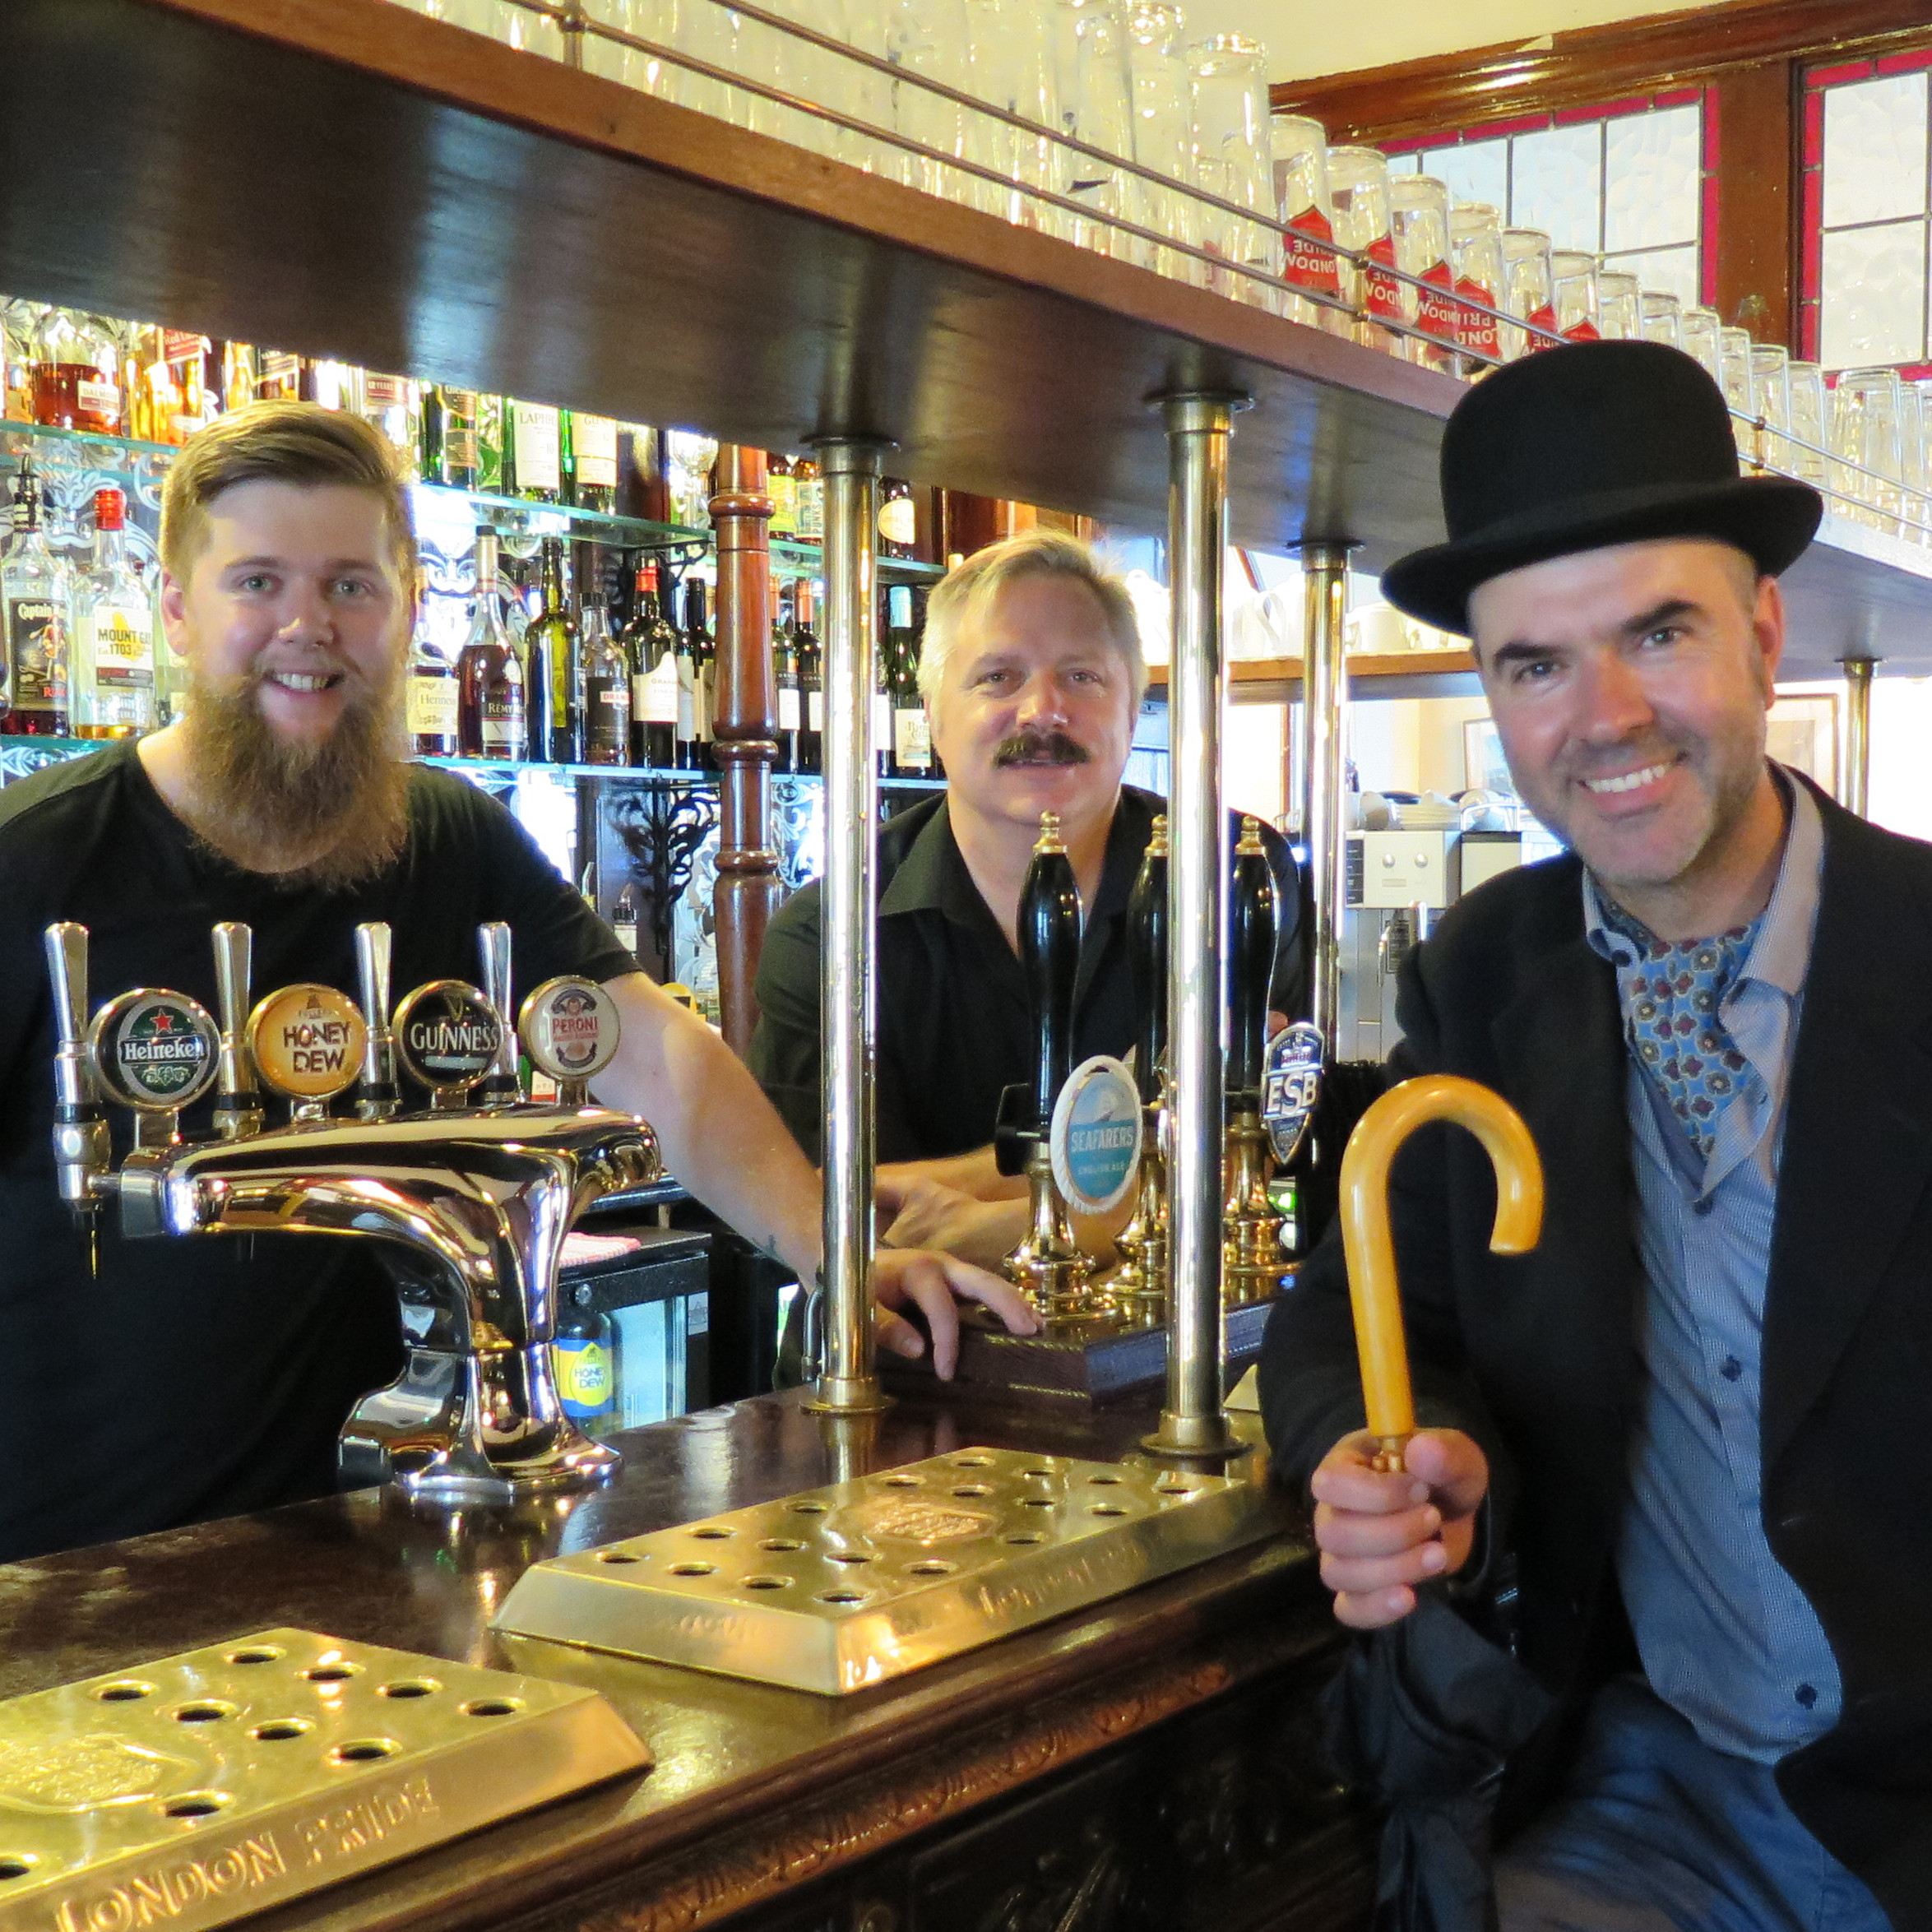 Chris Buckley and Daryl Lee -Managers at Fullers Lamb and Flag